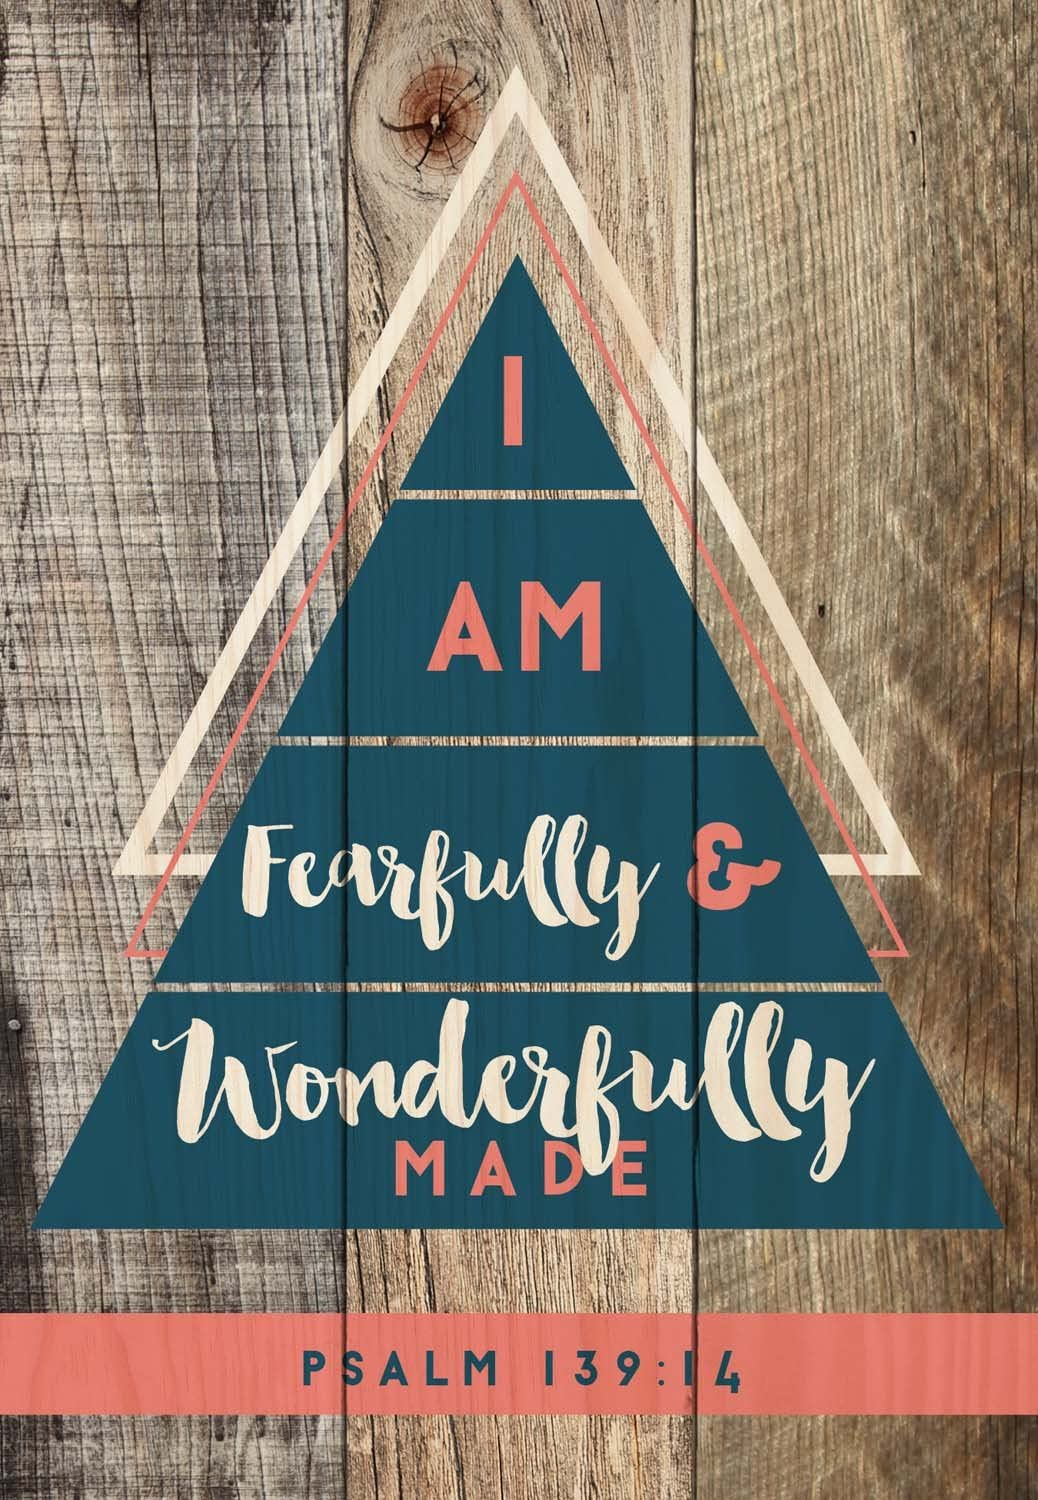 P. Graham Dunn I Am Fearfully and Wonderfully Made Navy and Coral 6.5 x 4.5 Small Wood Plank Design Plaque Sign